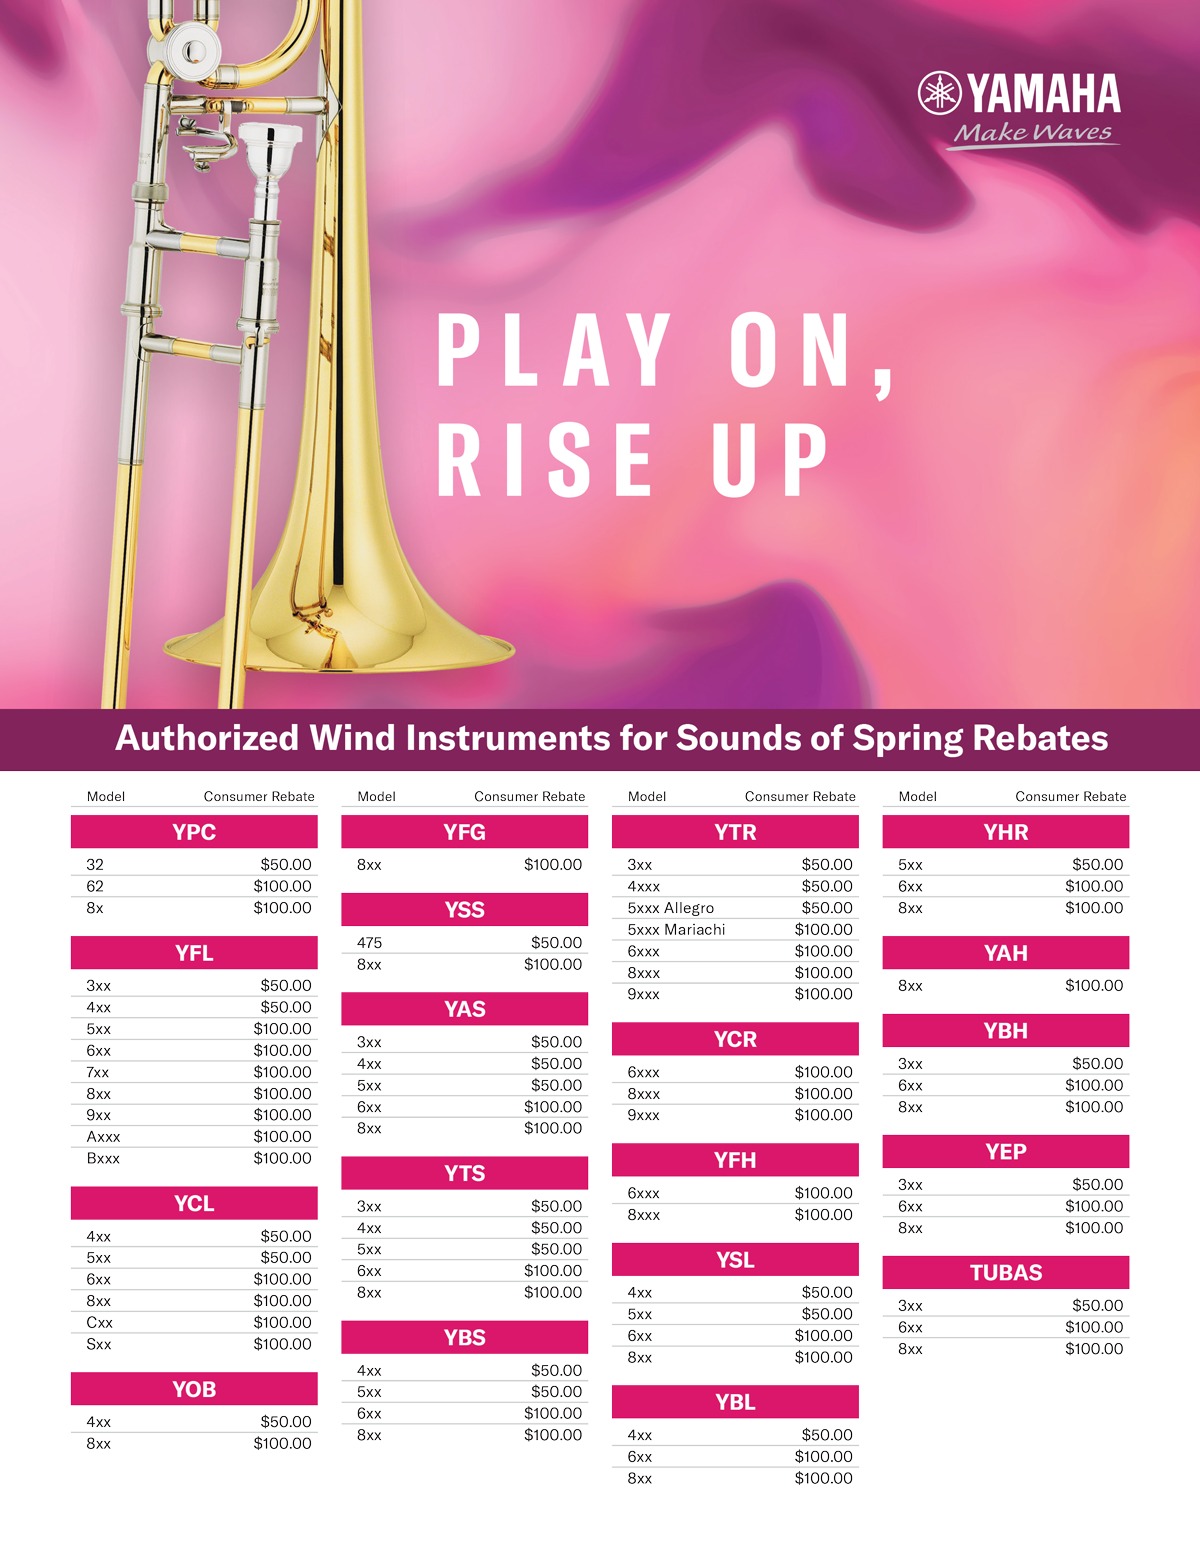 sounds-of-spring-rebate2021-model-reference-sheet-r2a-2.png